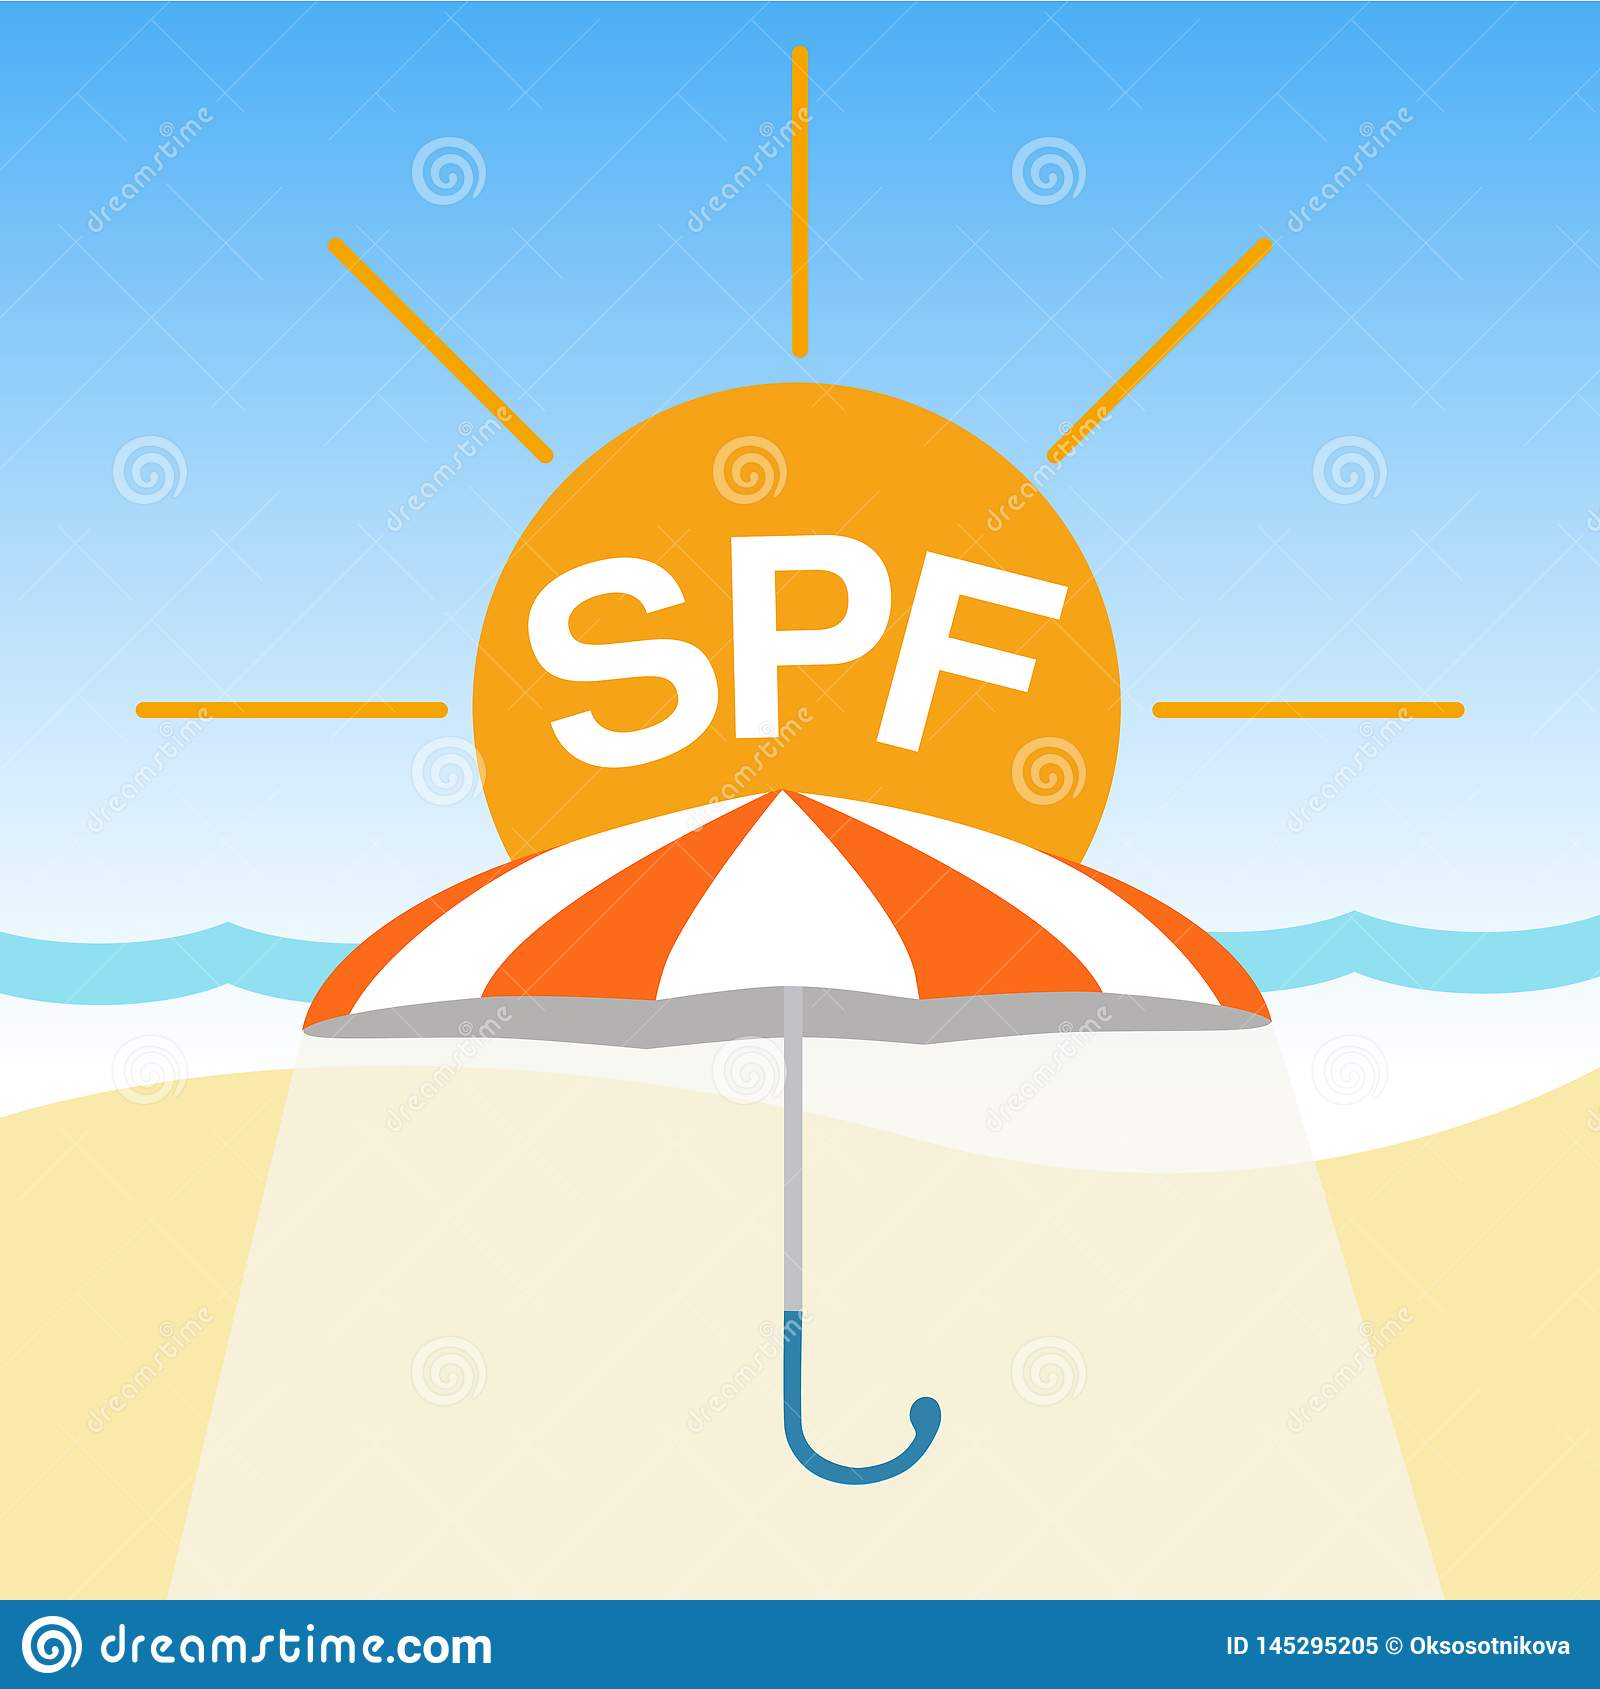 Vector badge, logo on protection from bright sunlight. Summer vacation, sunscreen, orange umbrella on the beach with the word SPF